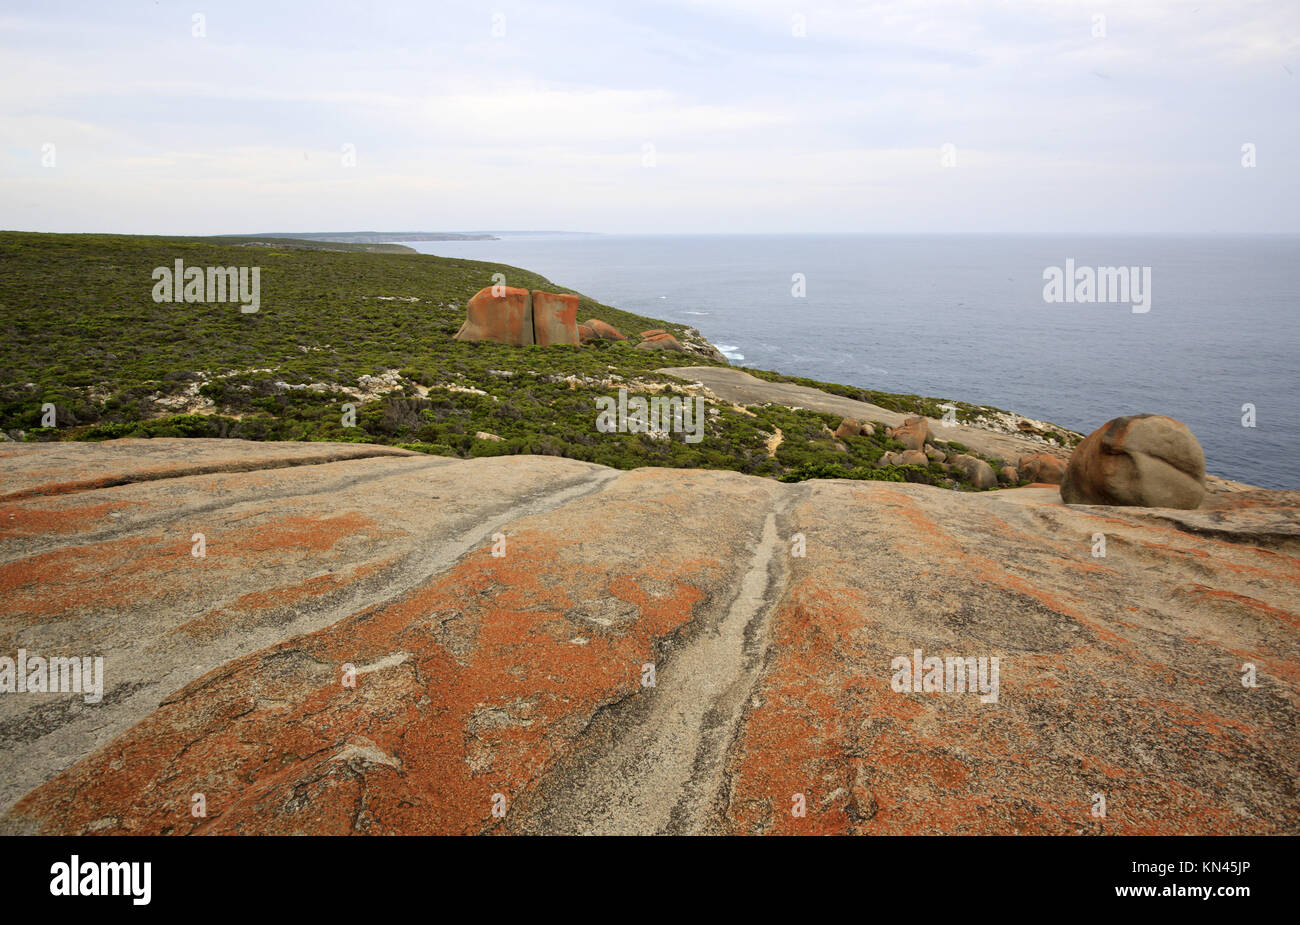 Remarkable Rocks, Kangaroo Island. - Stock Image